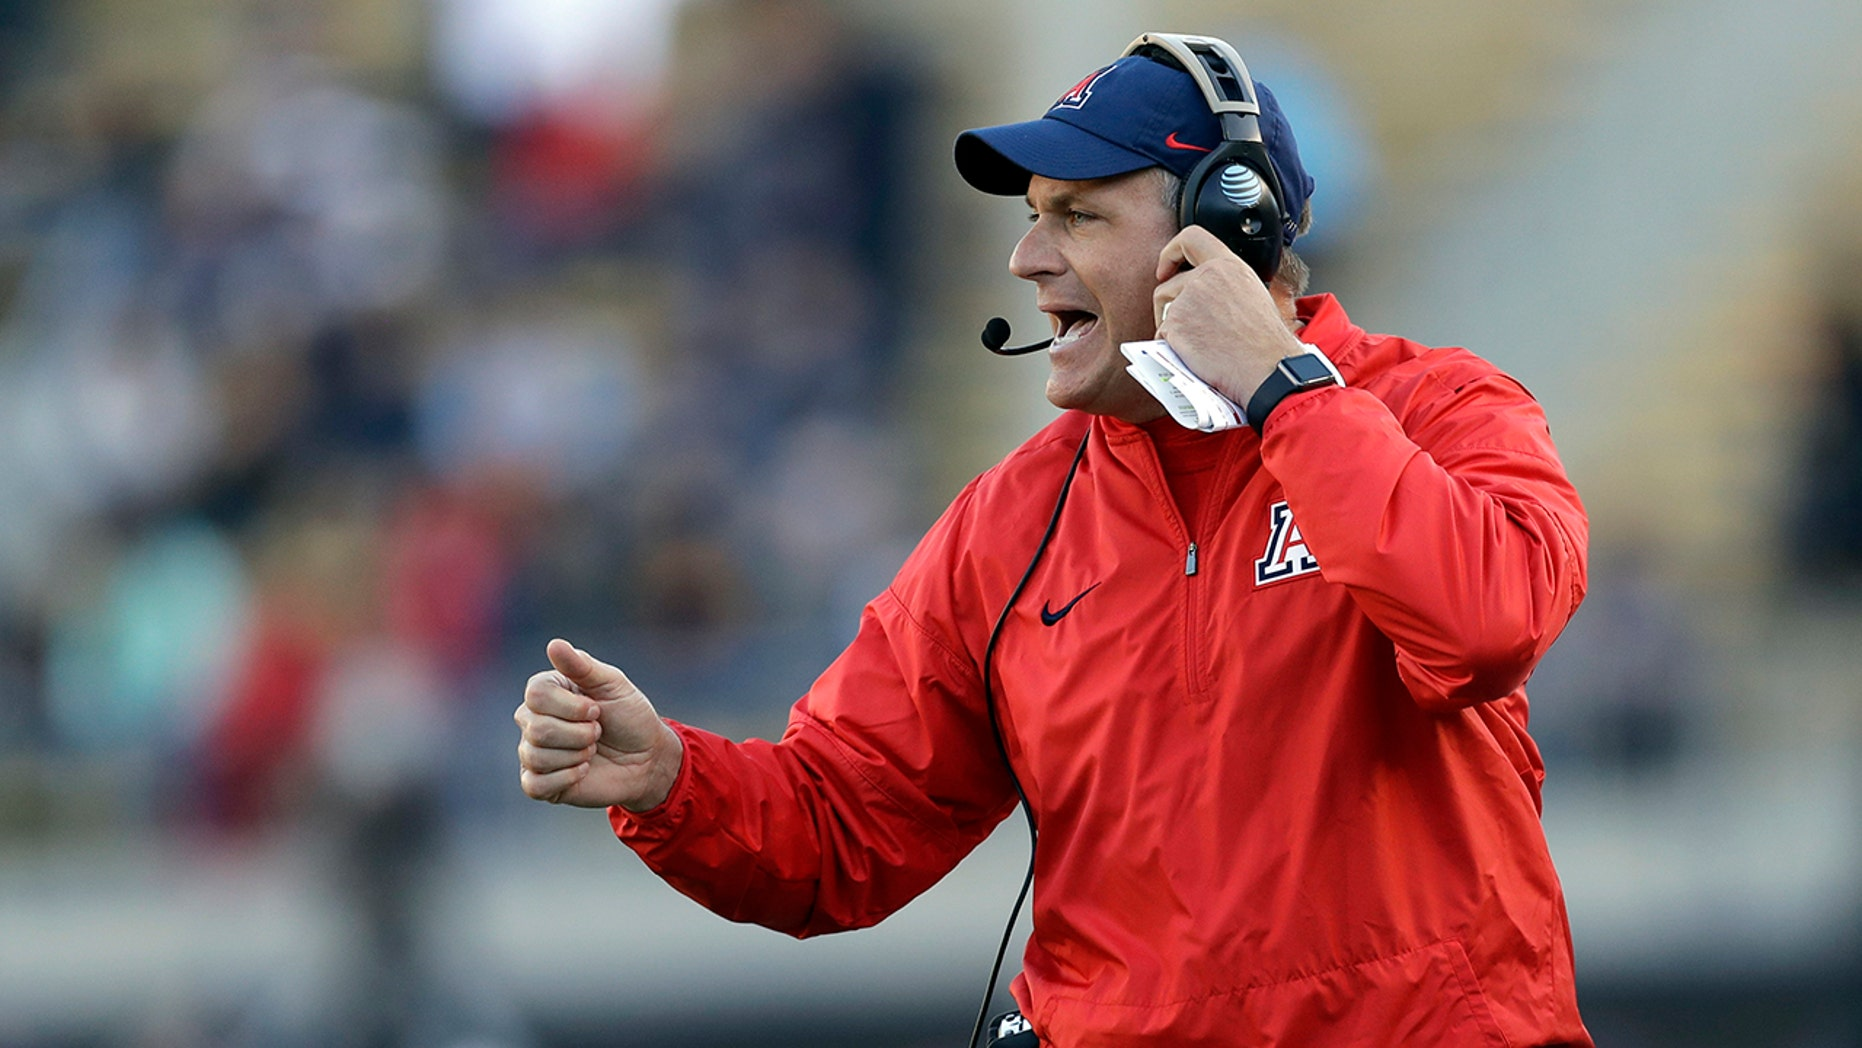 Oct. 21, 2017: Arizona coach Rich Rodriguez yells from the sideline during the first half of the team's NCAA college football game against California in Berkeley, Calif.